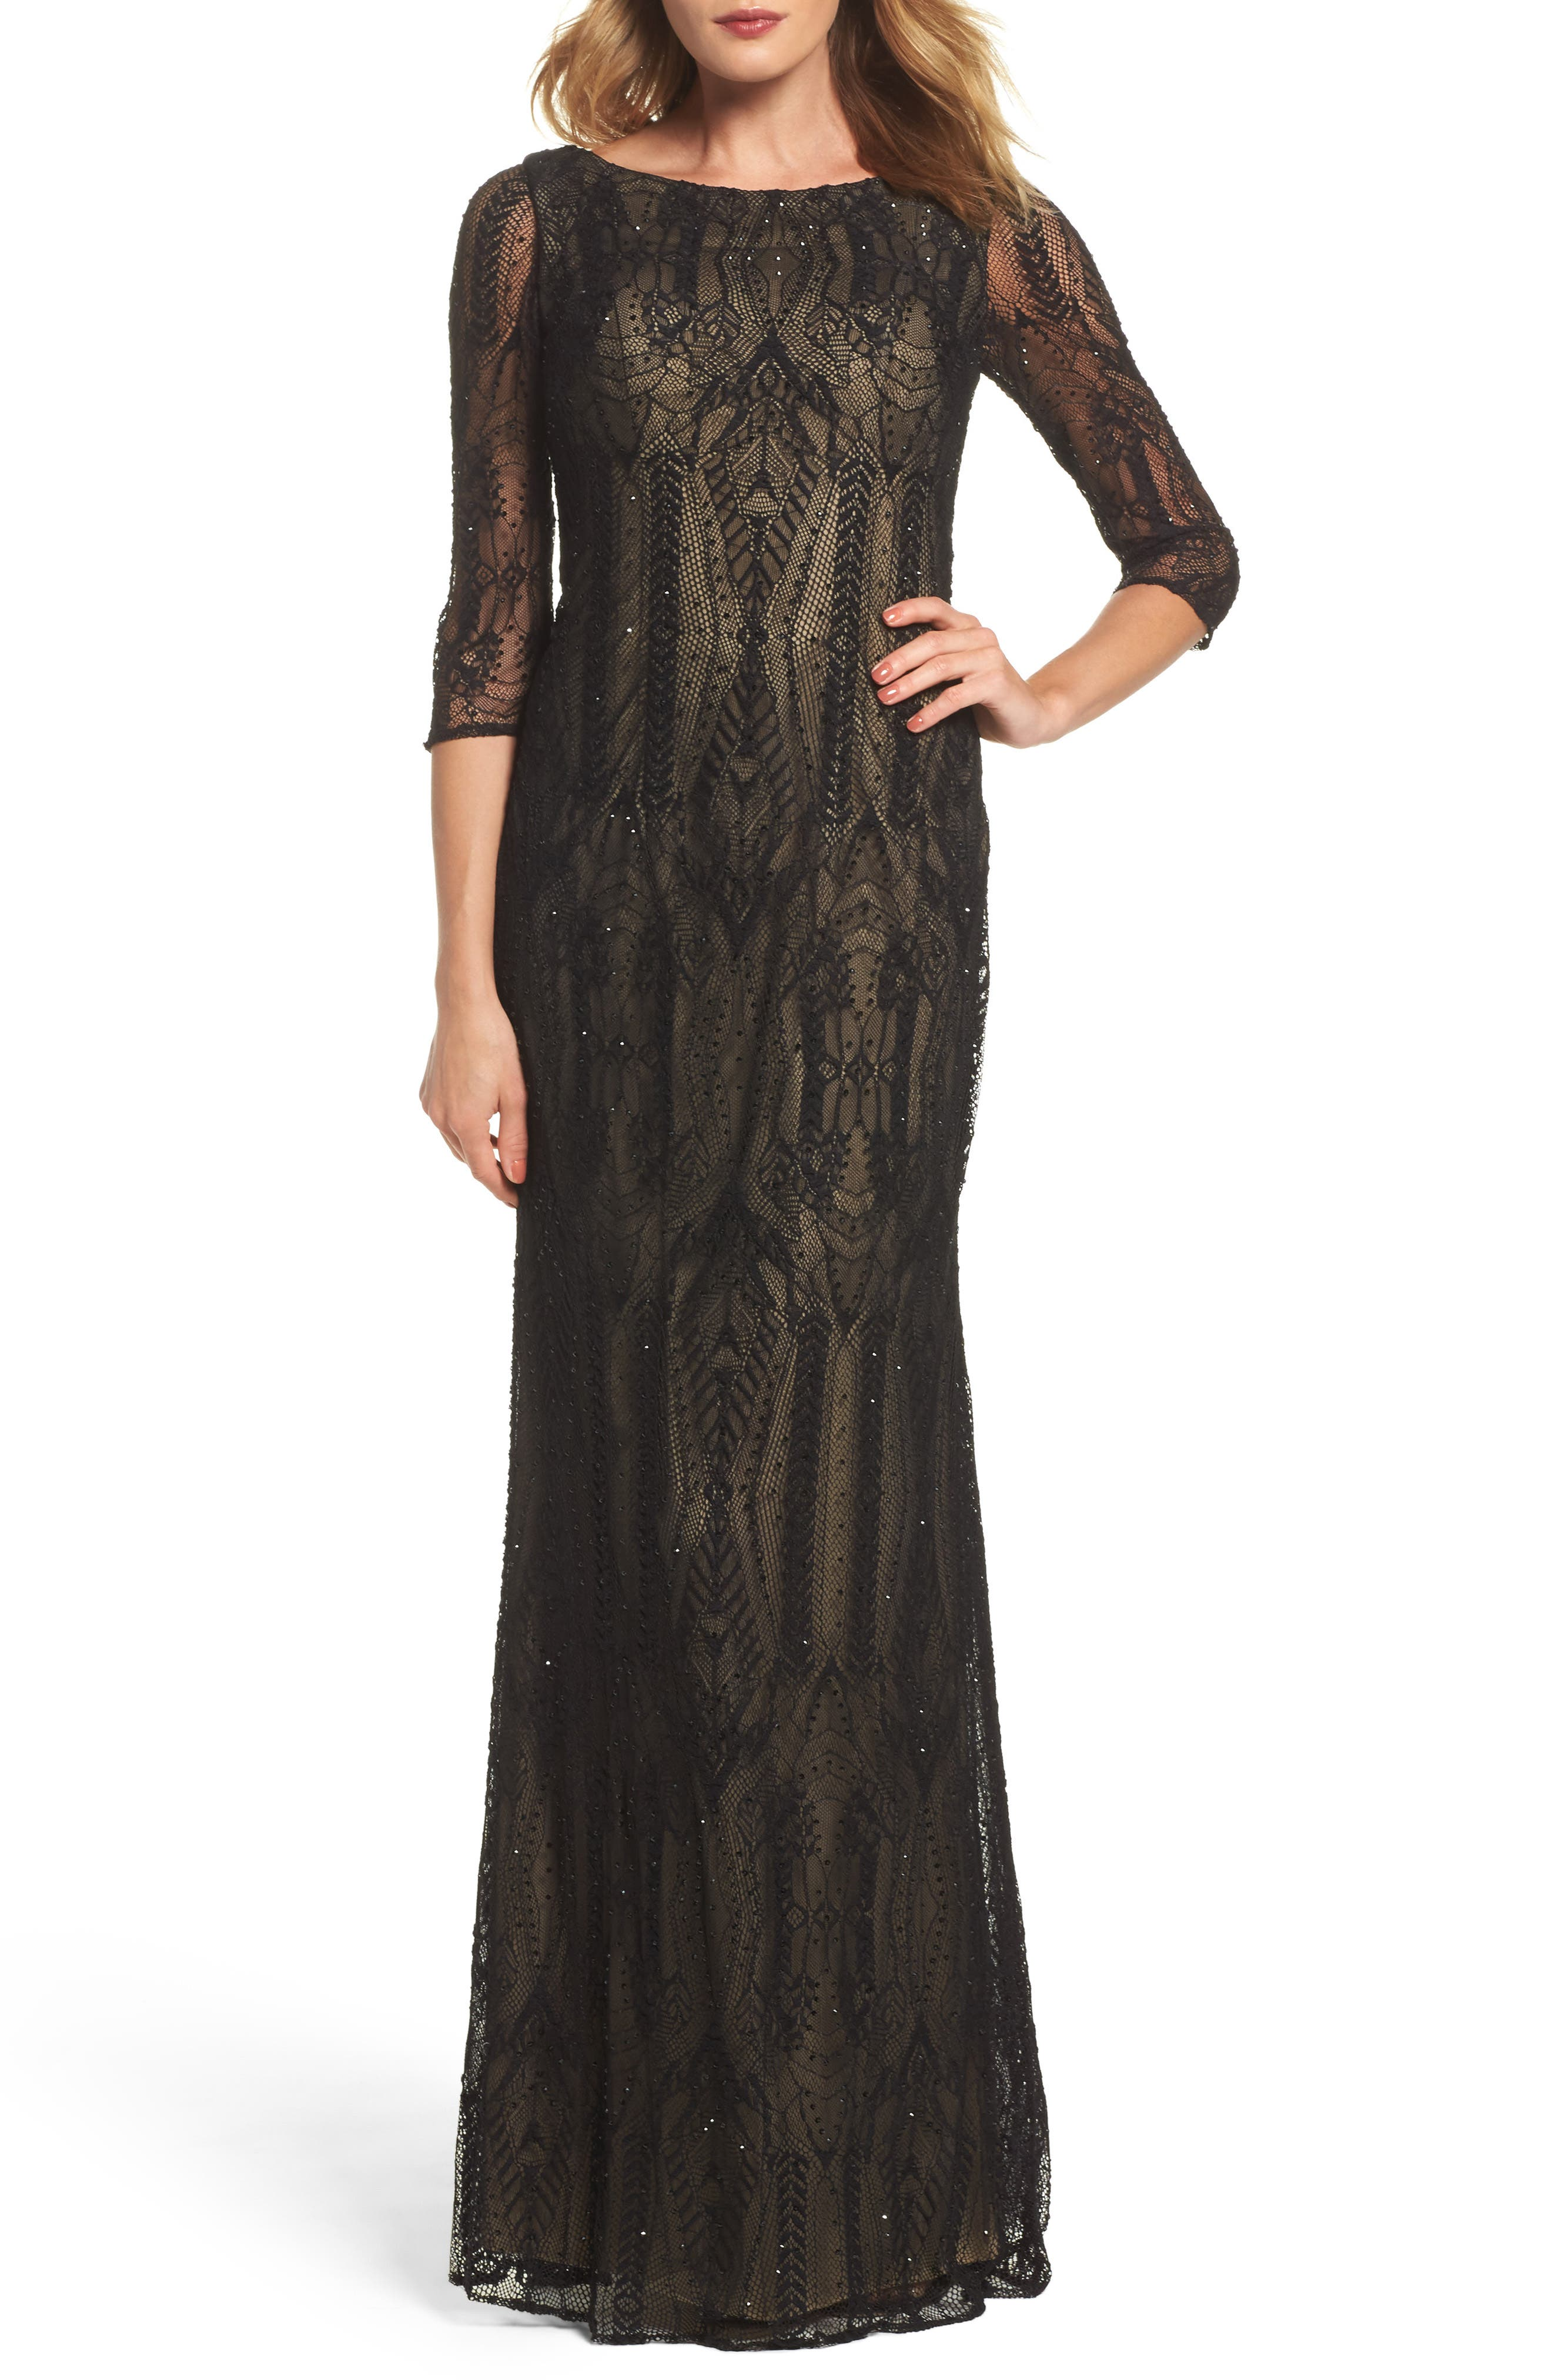 Alternate Image 1 Selected - La Femme Crystal Lace Column Gown